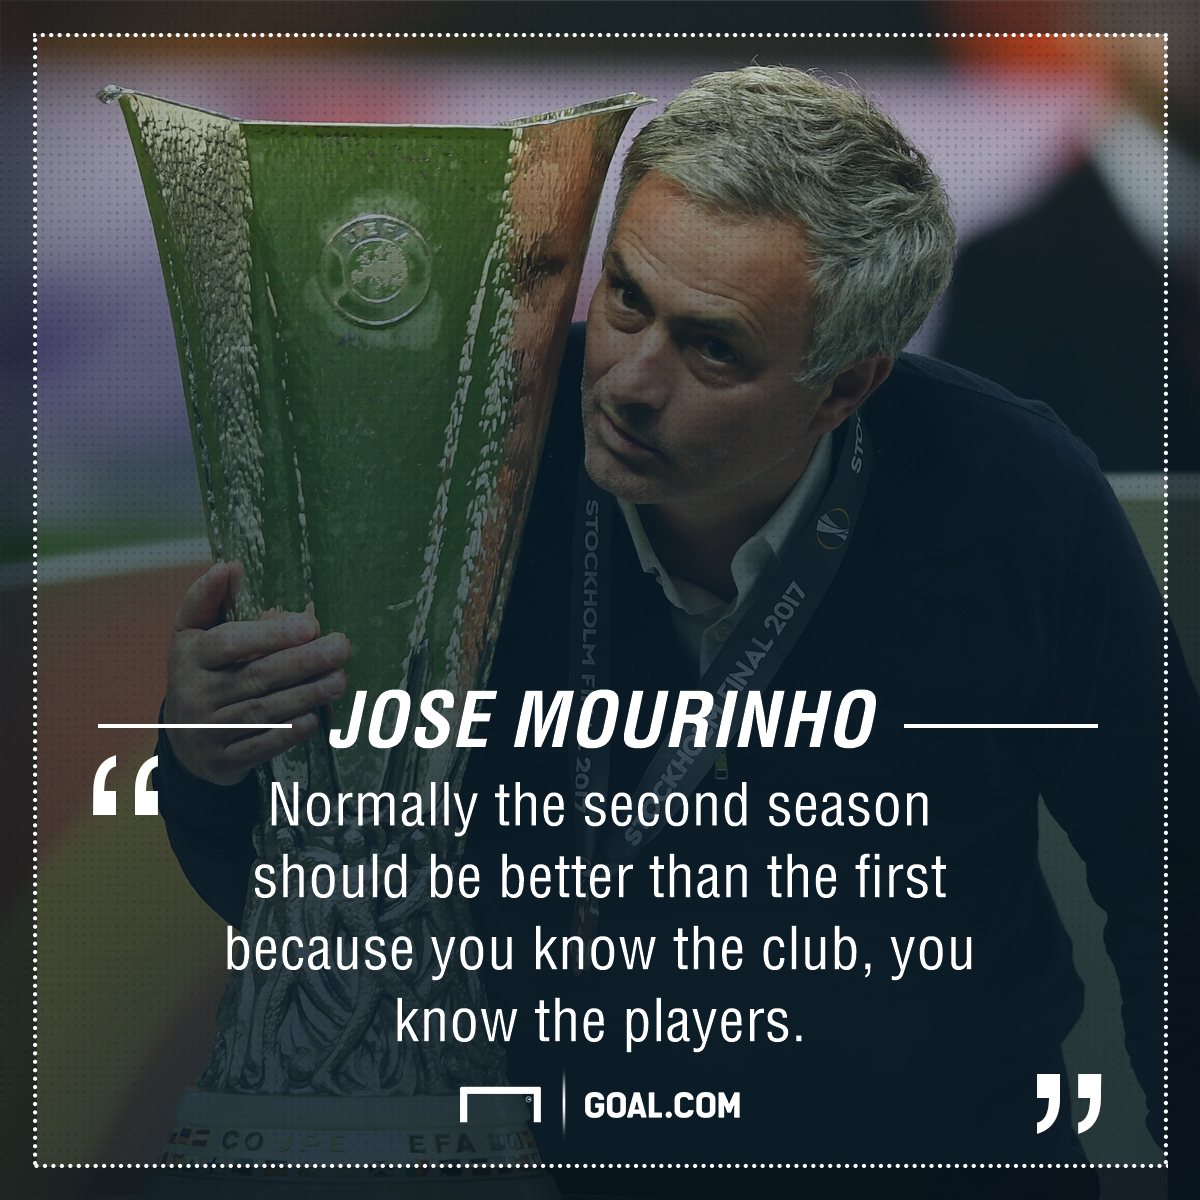 Jose Mourinho Manchester United second season